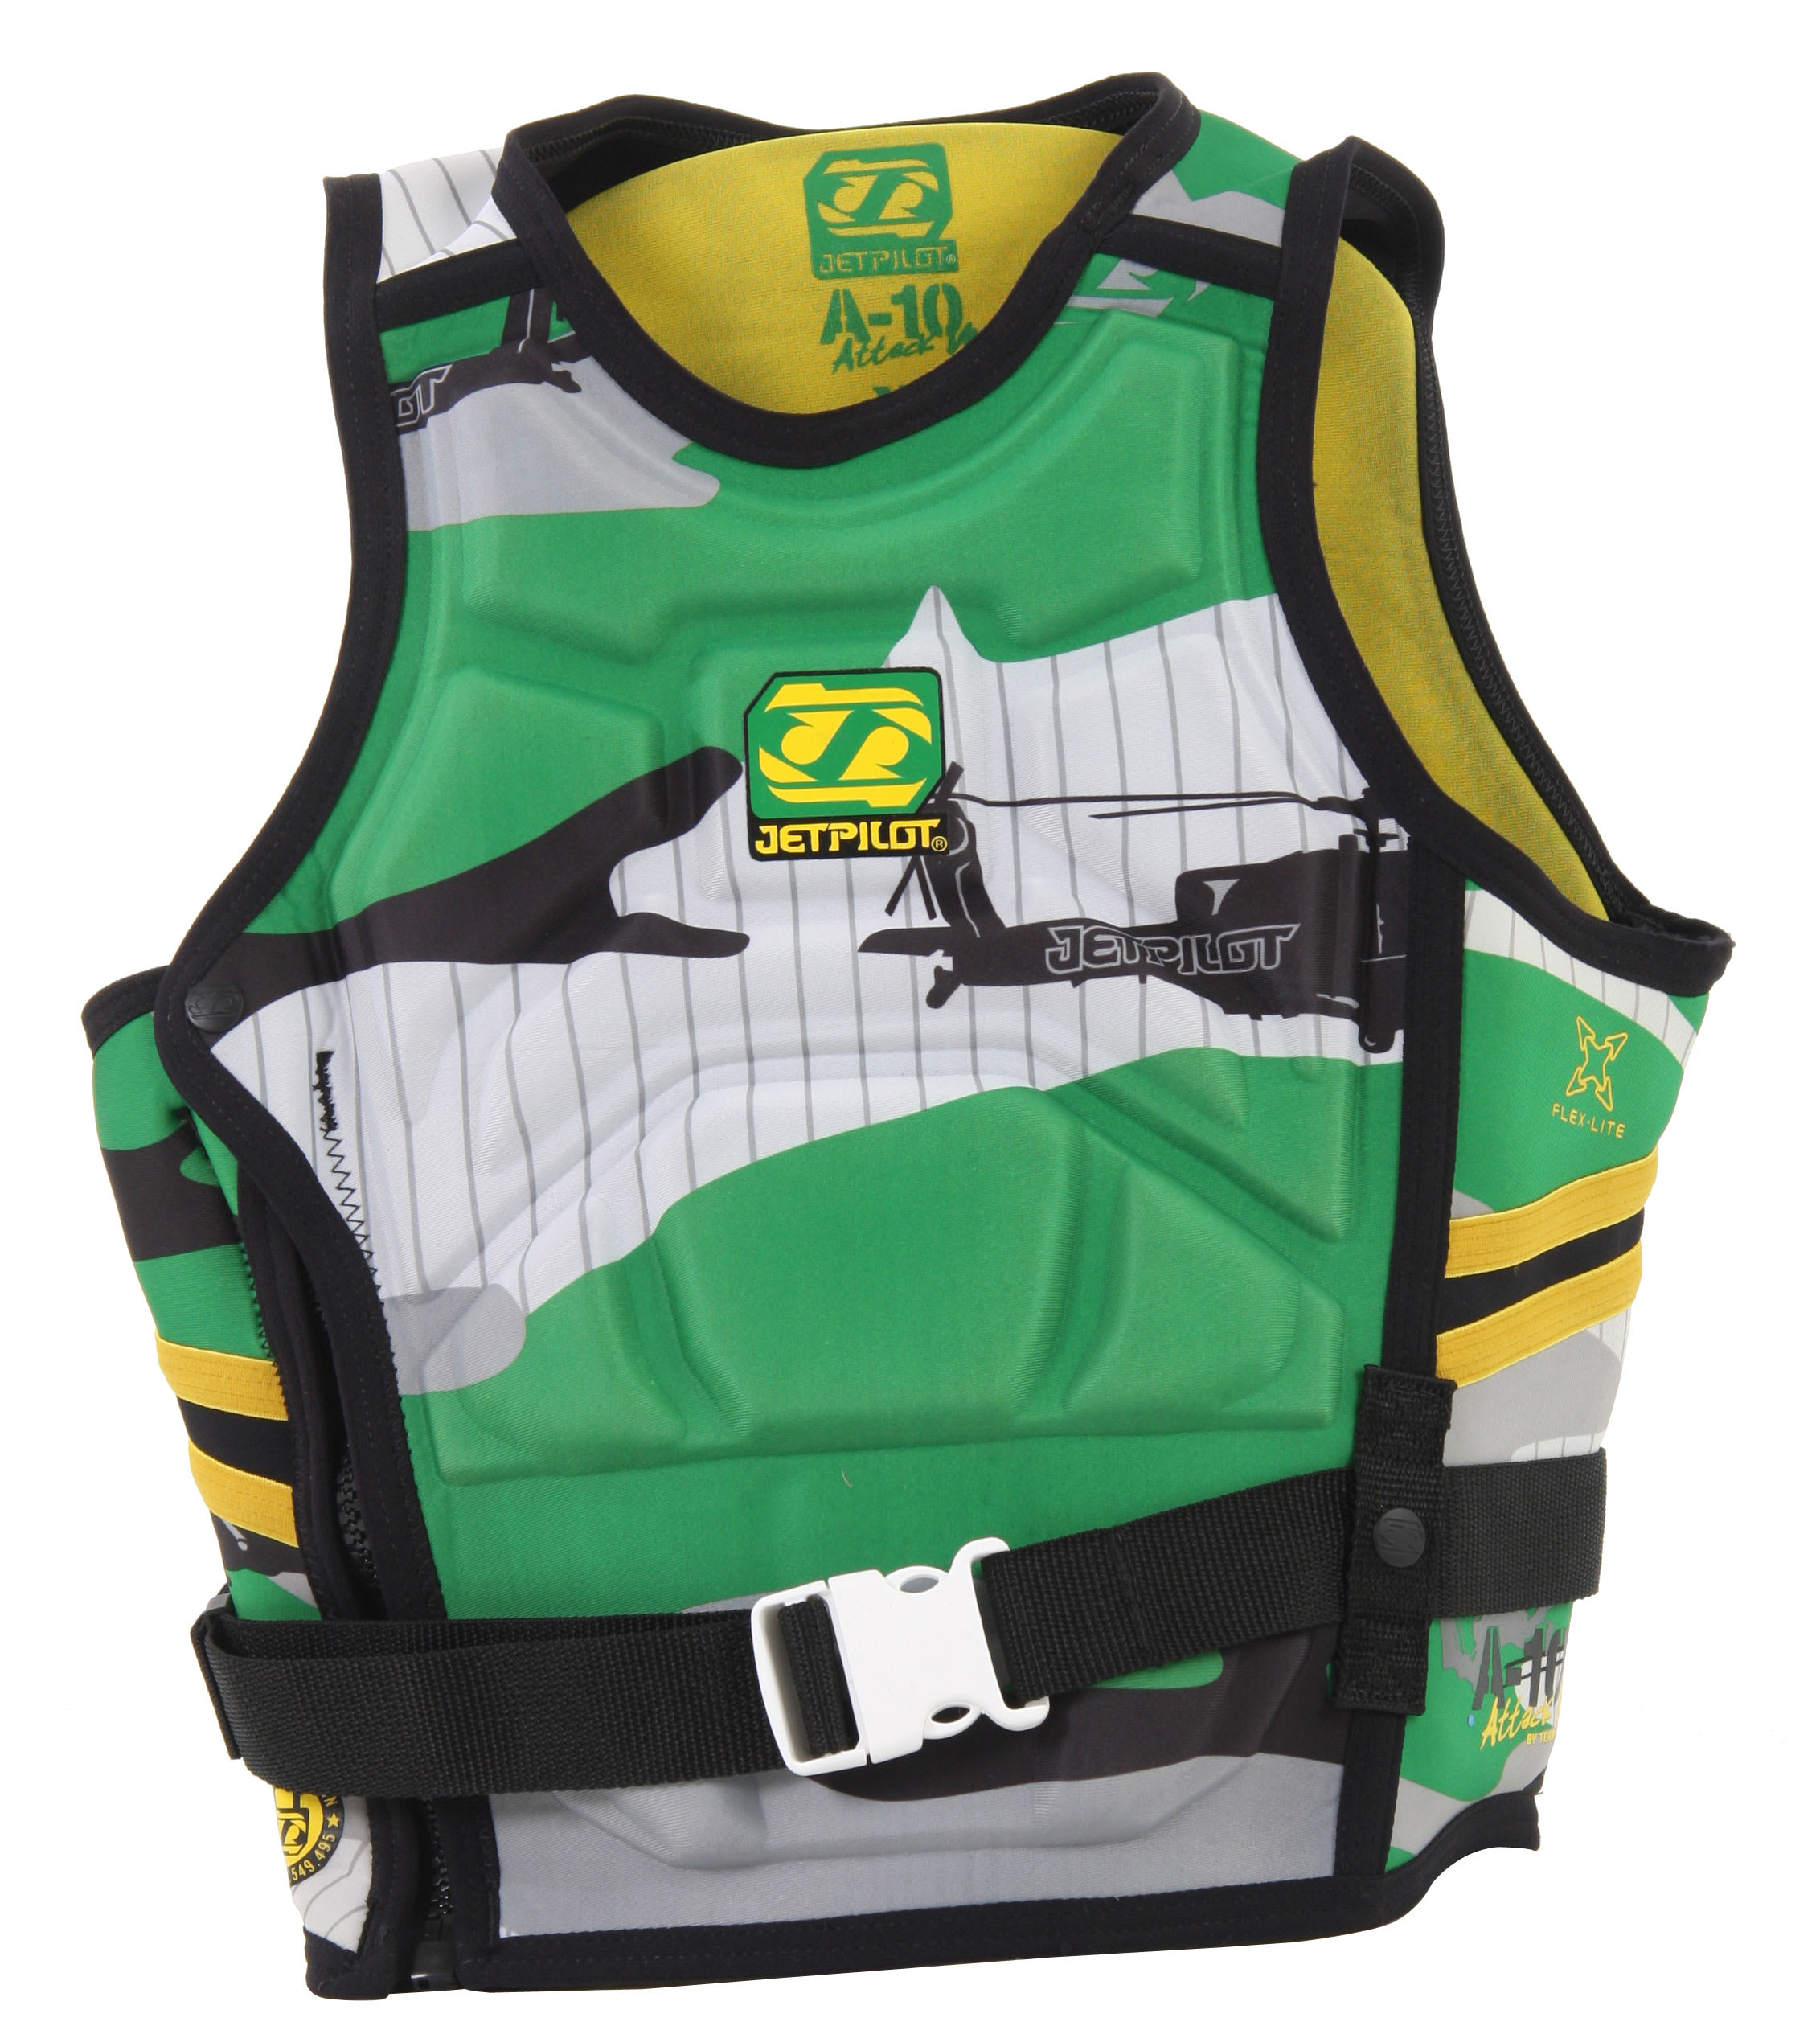 Shop for Jet Pilot A-10 Molded S/E Comp Wakeboard Vest Green - Men's